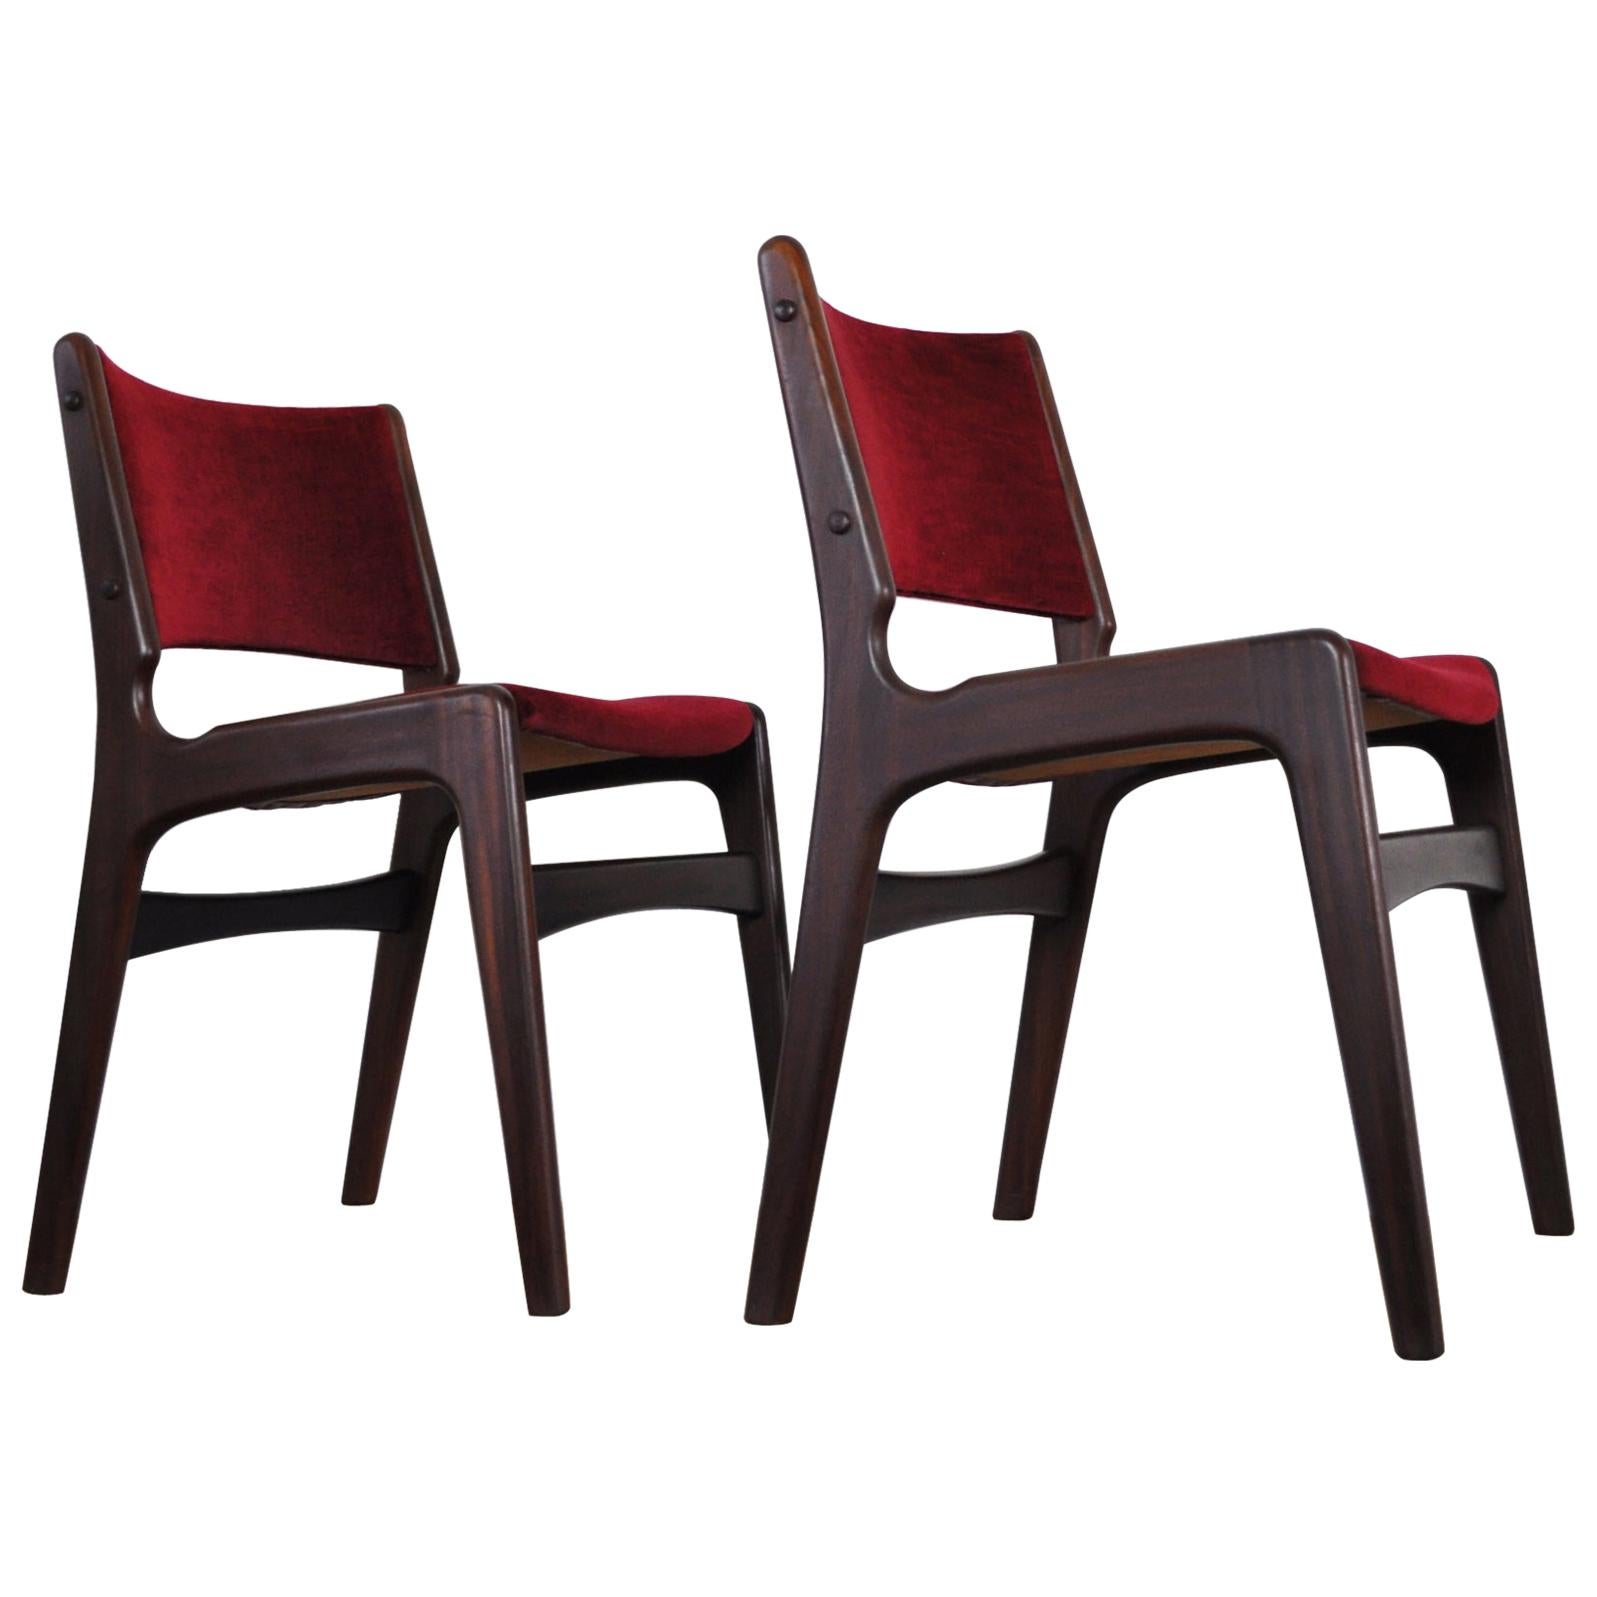 Set of Two Scandinavian Modern Dining Chairs in Solid Teak by Erik Buch